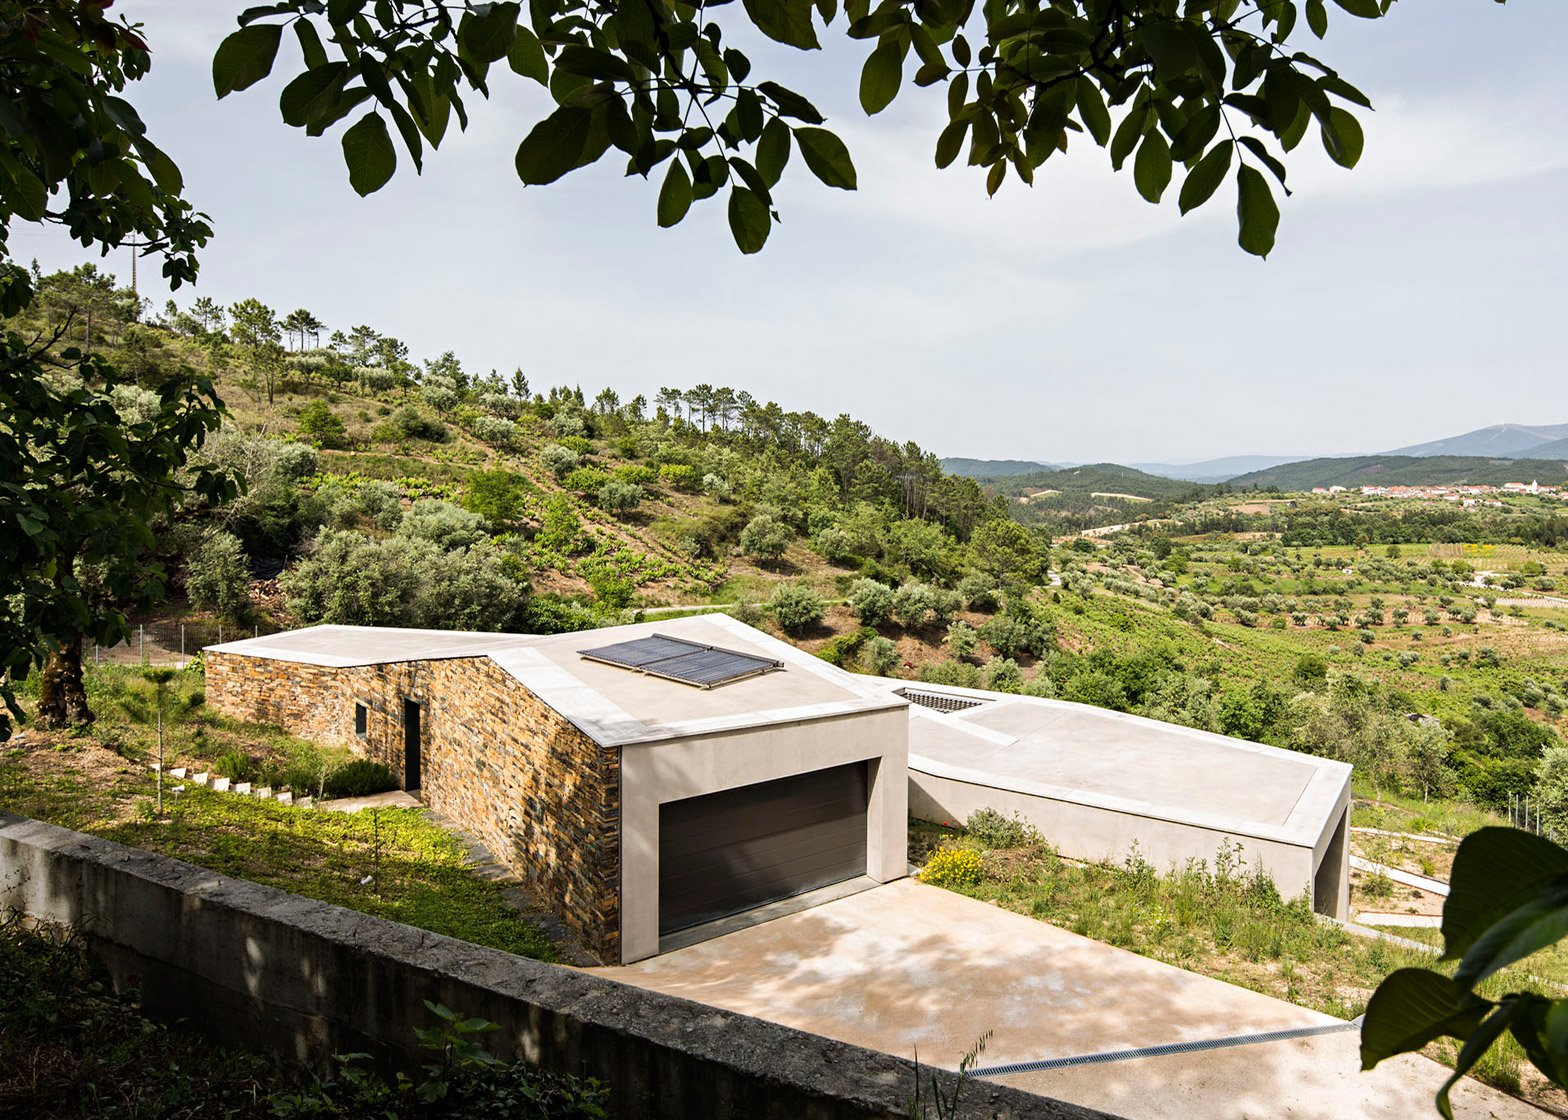 Casa na Gateira by Camarim Arquitectos in Portugal residential architecture concrete